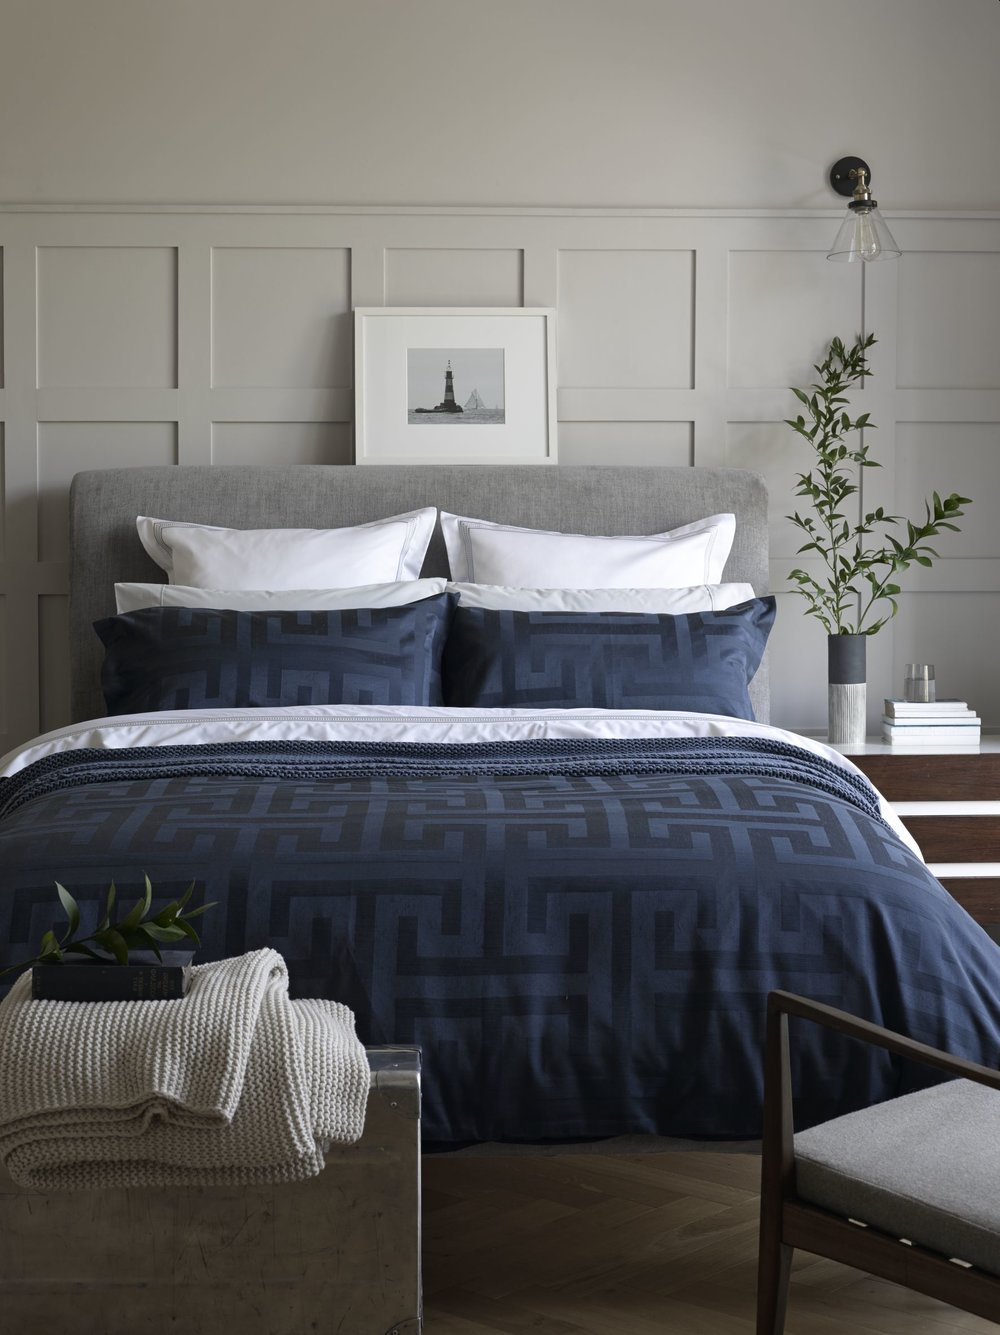 Product name:  Christy Nero Main Double Duvet Set.  Stockist information:   www.christy-home.com